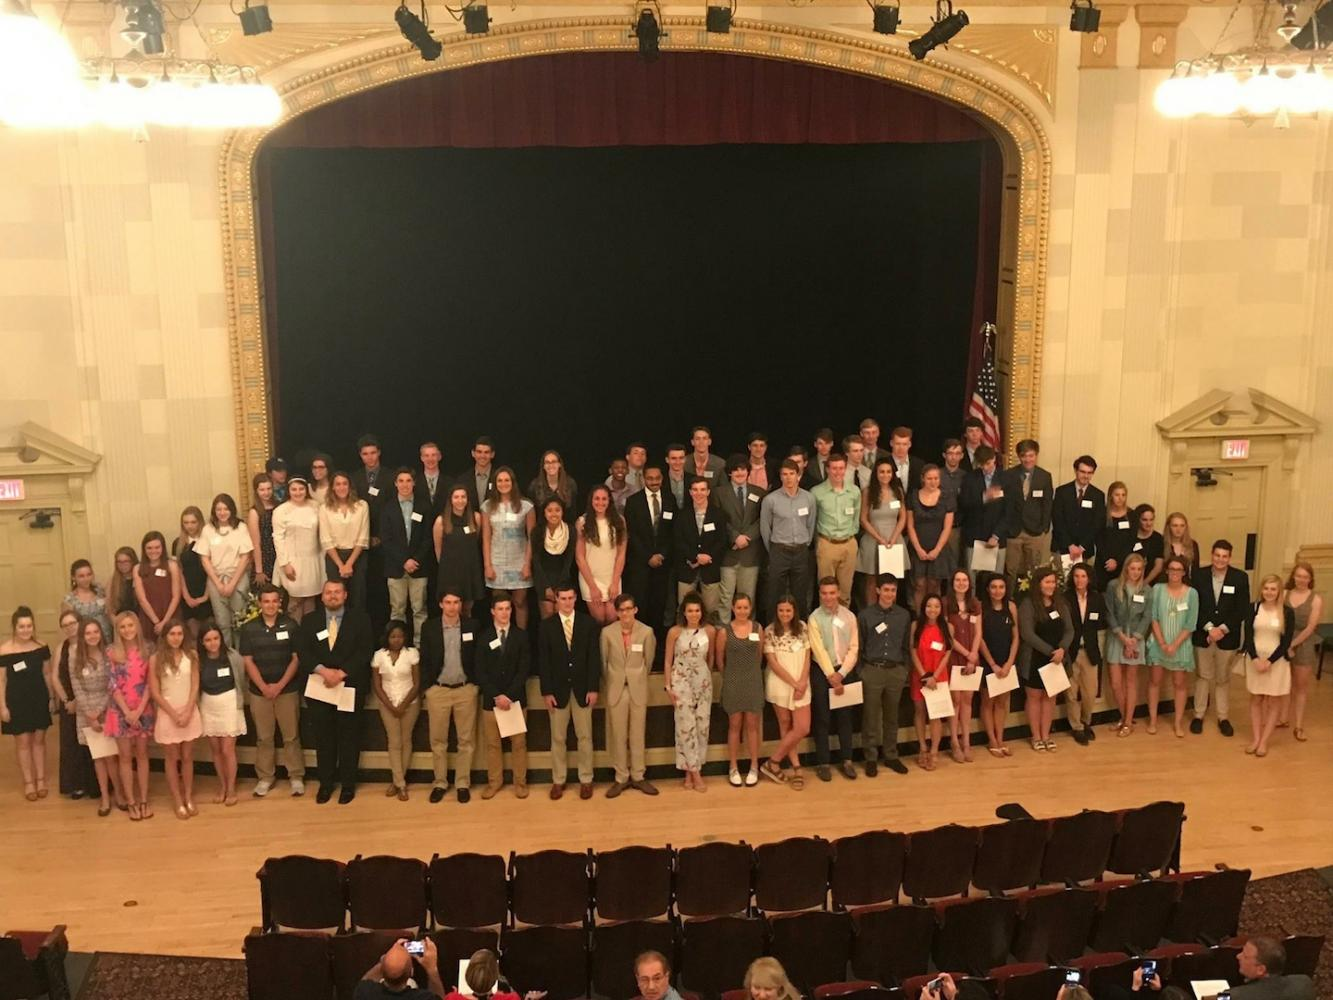 The 2017 recipients of the Mothers Club scholarships in the South auditorium. There were 88 students who received scholarships through this event for this school year.